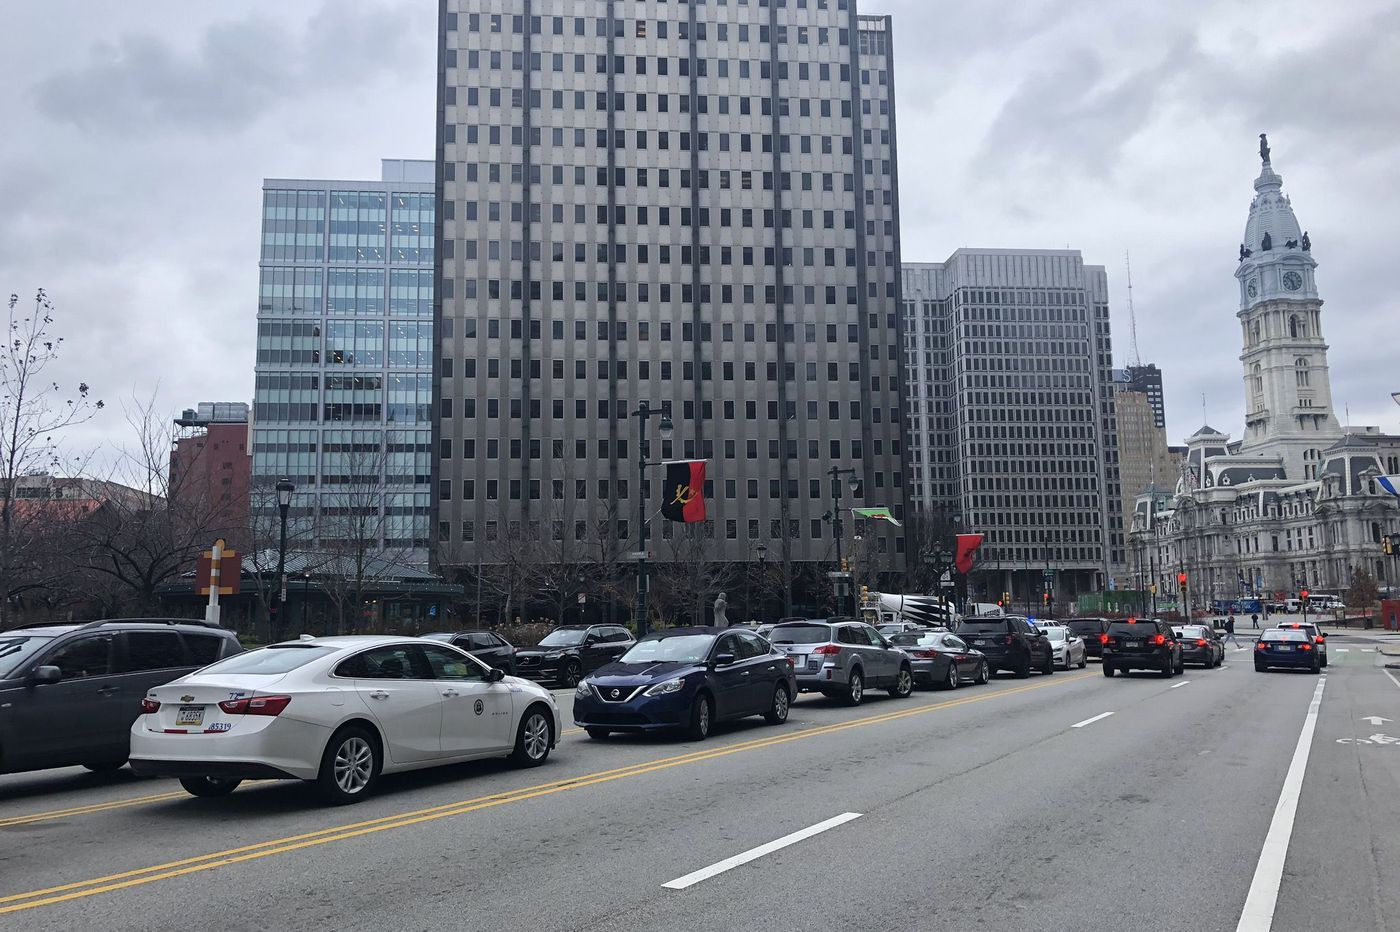 Tickets alone won't solve Philly's parking woes | Editorial